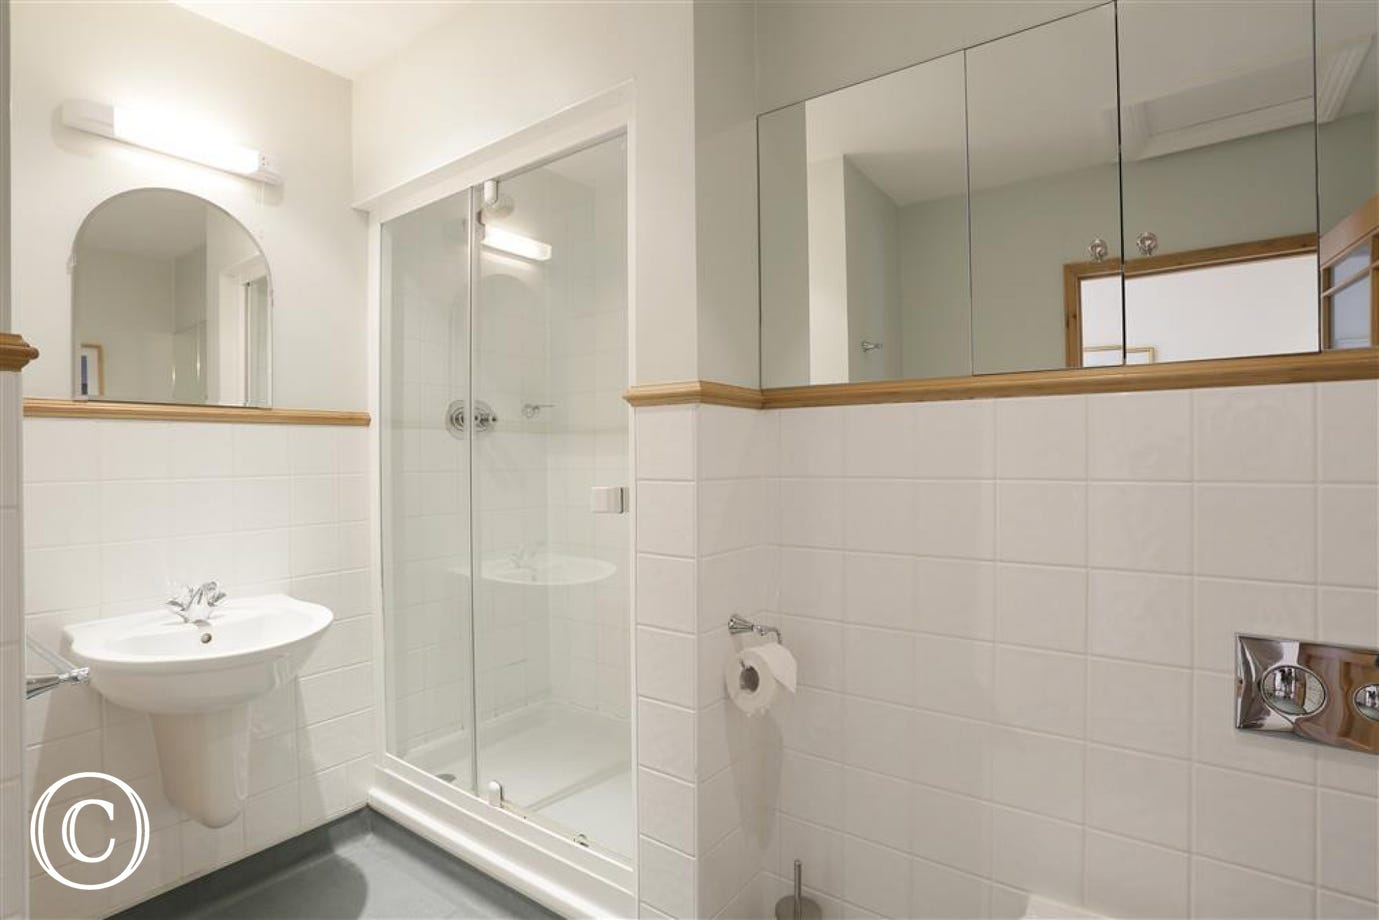 This shower room is on the first floor between the two bedrooms.